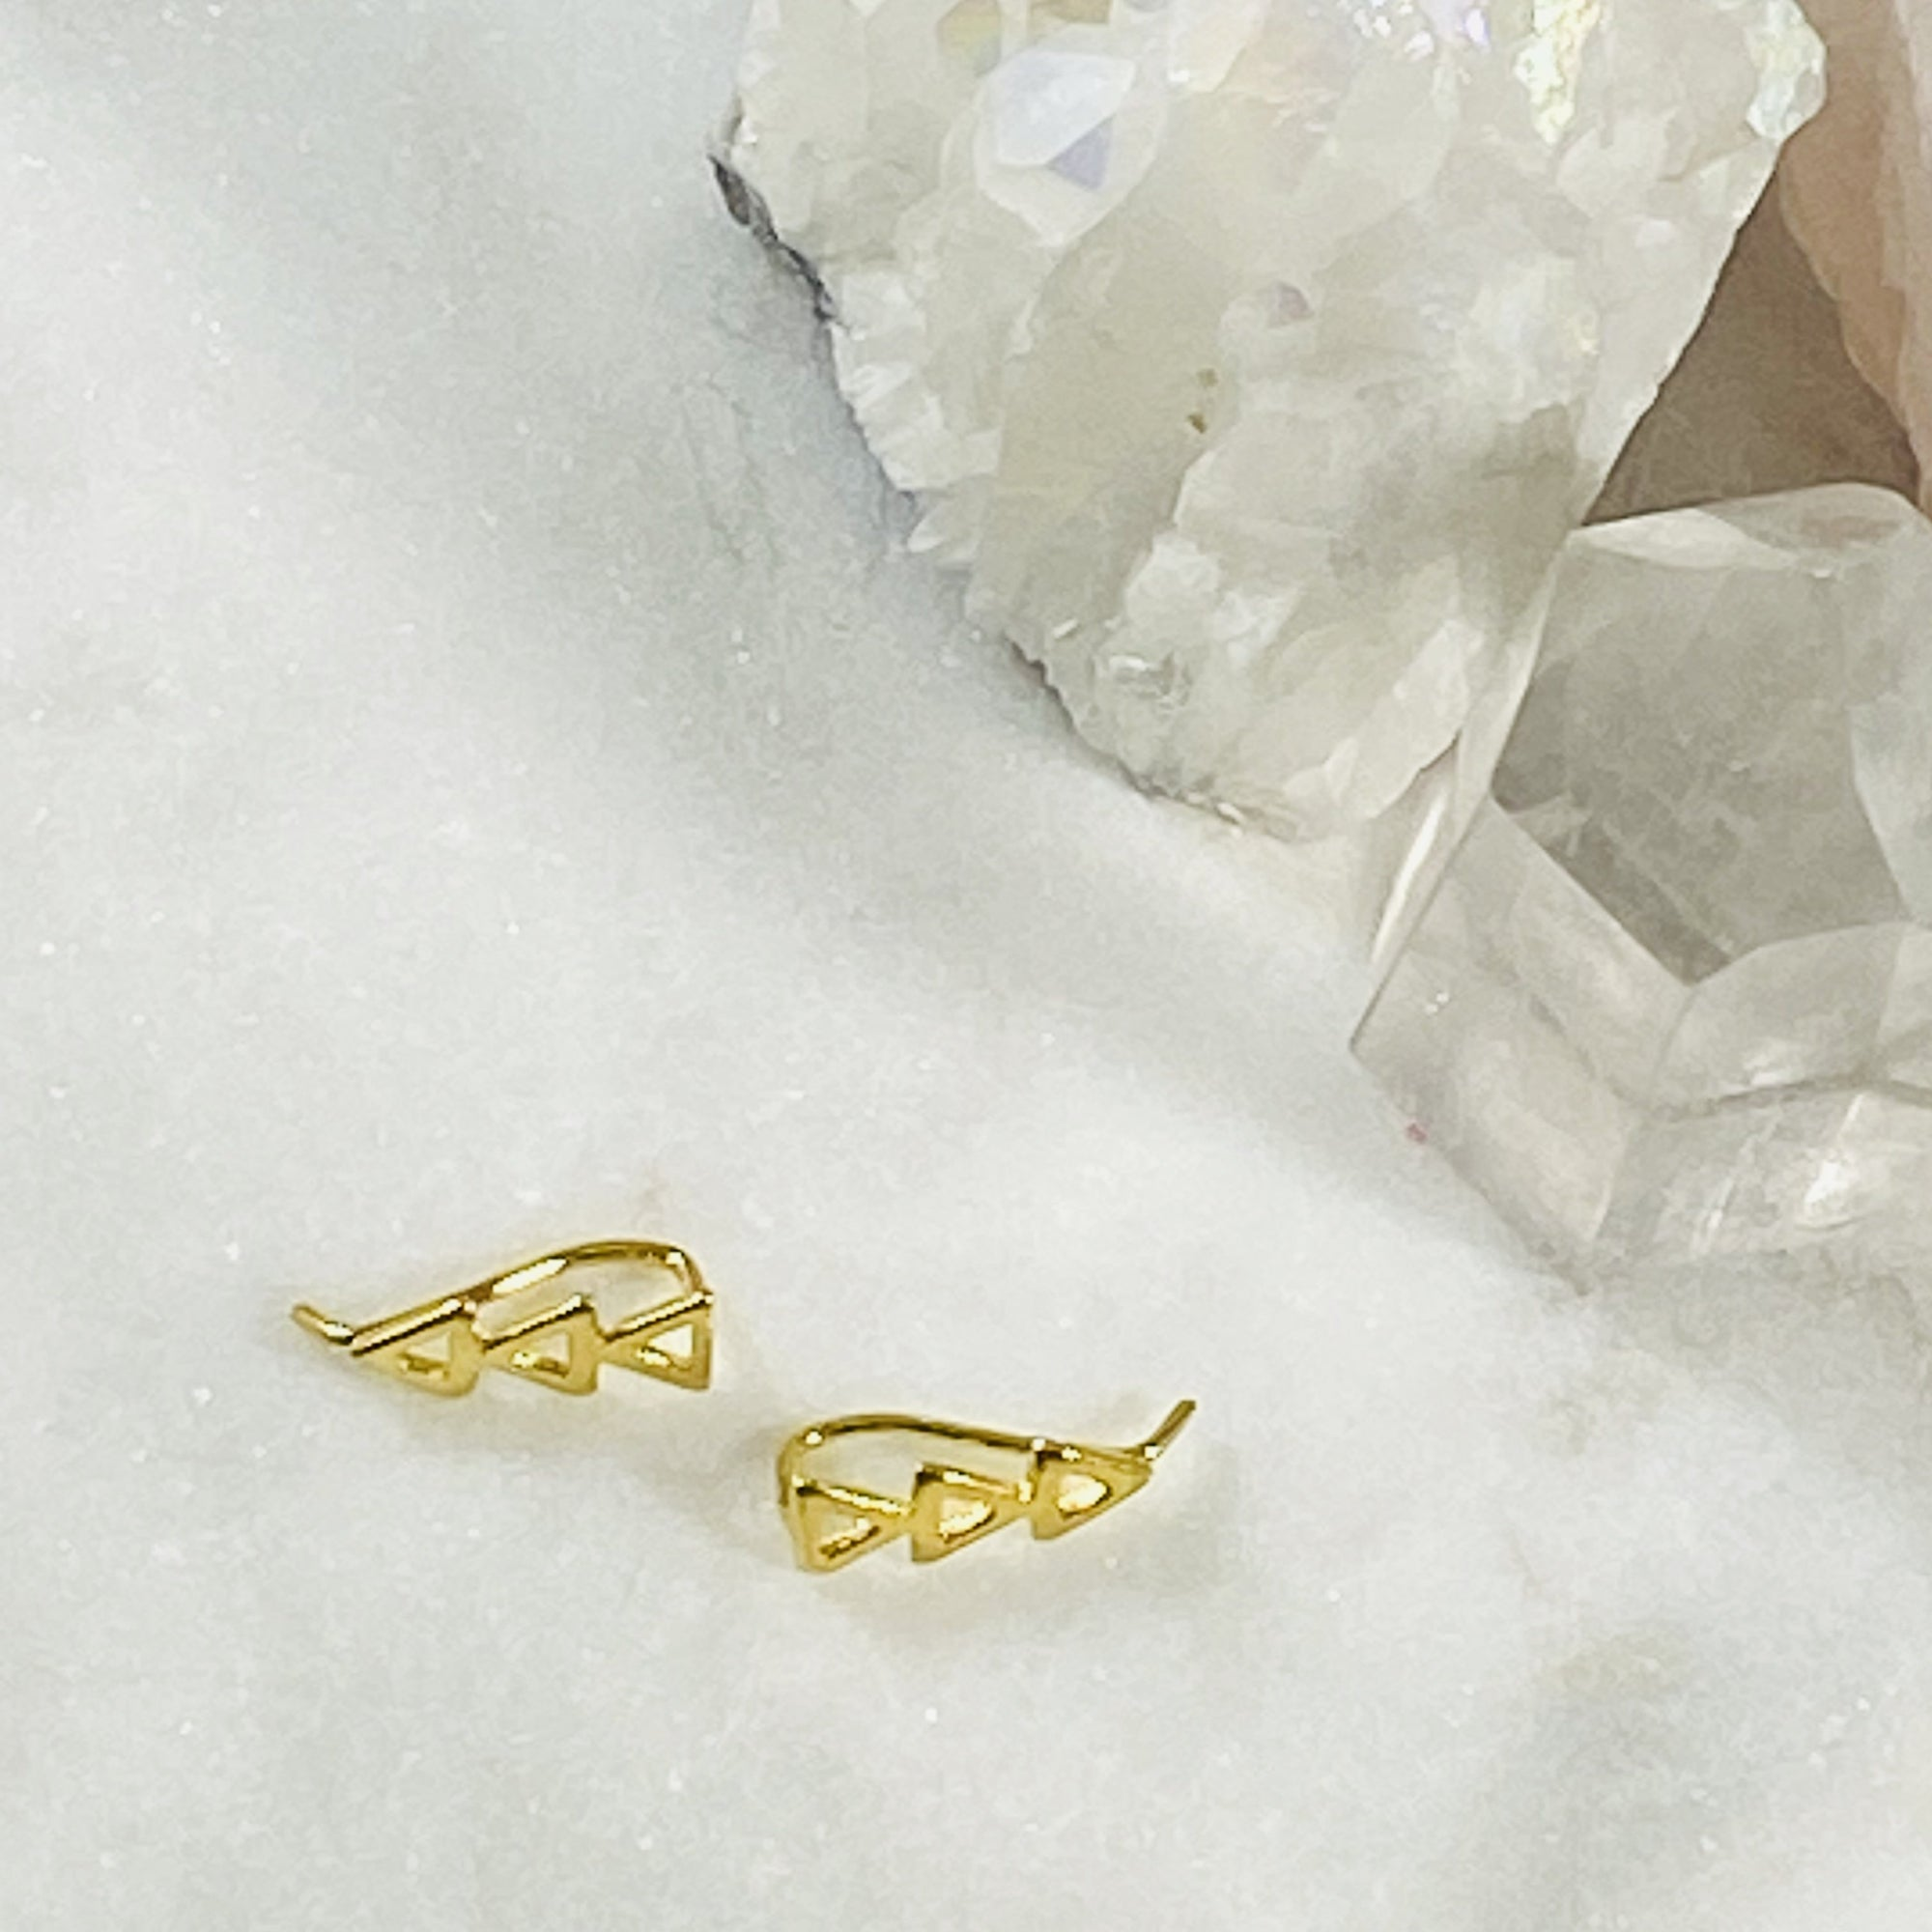 gold filled triangle ear climber earrings